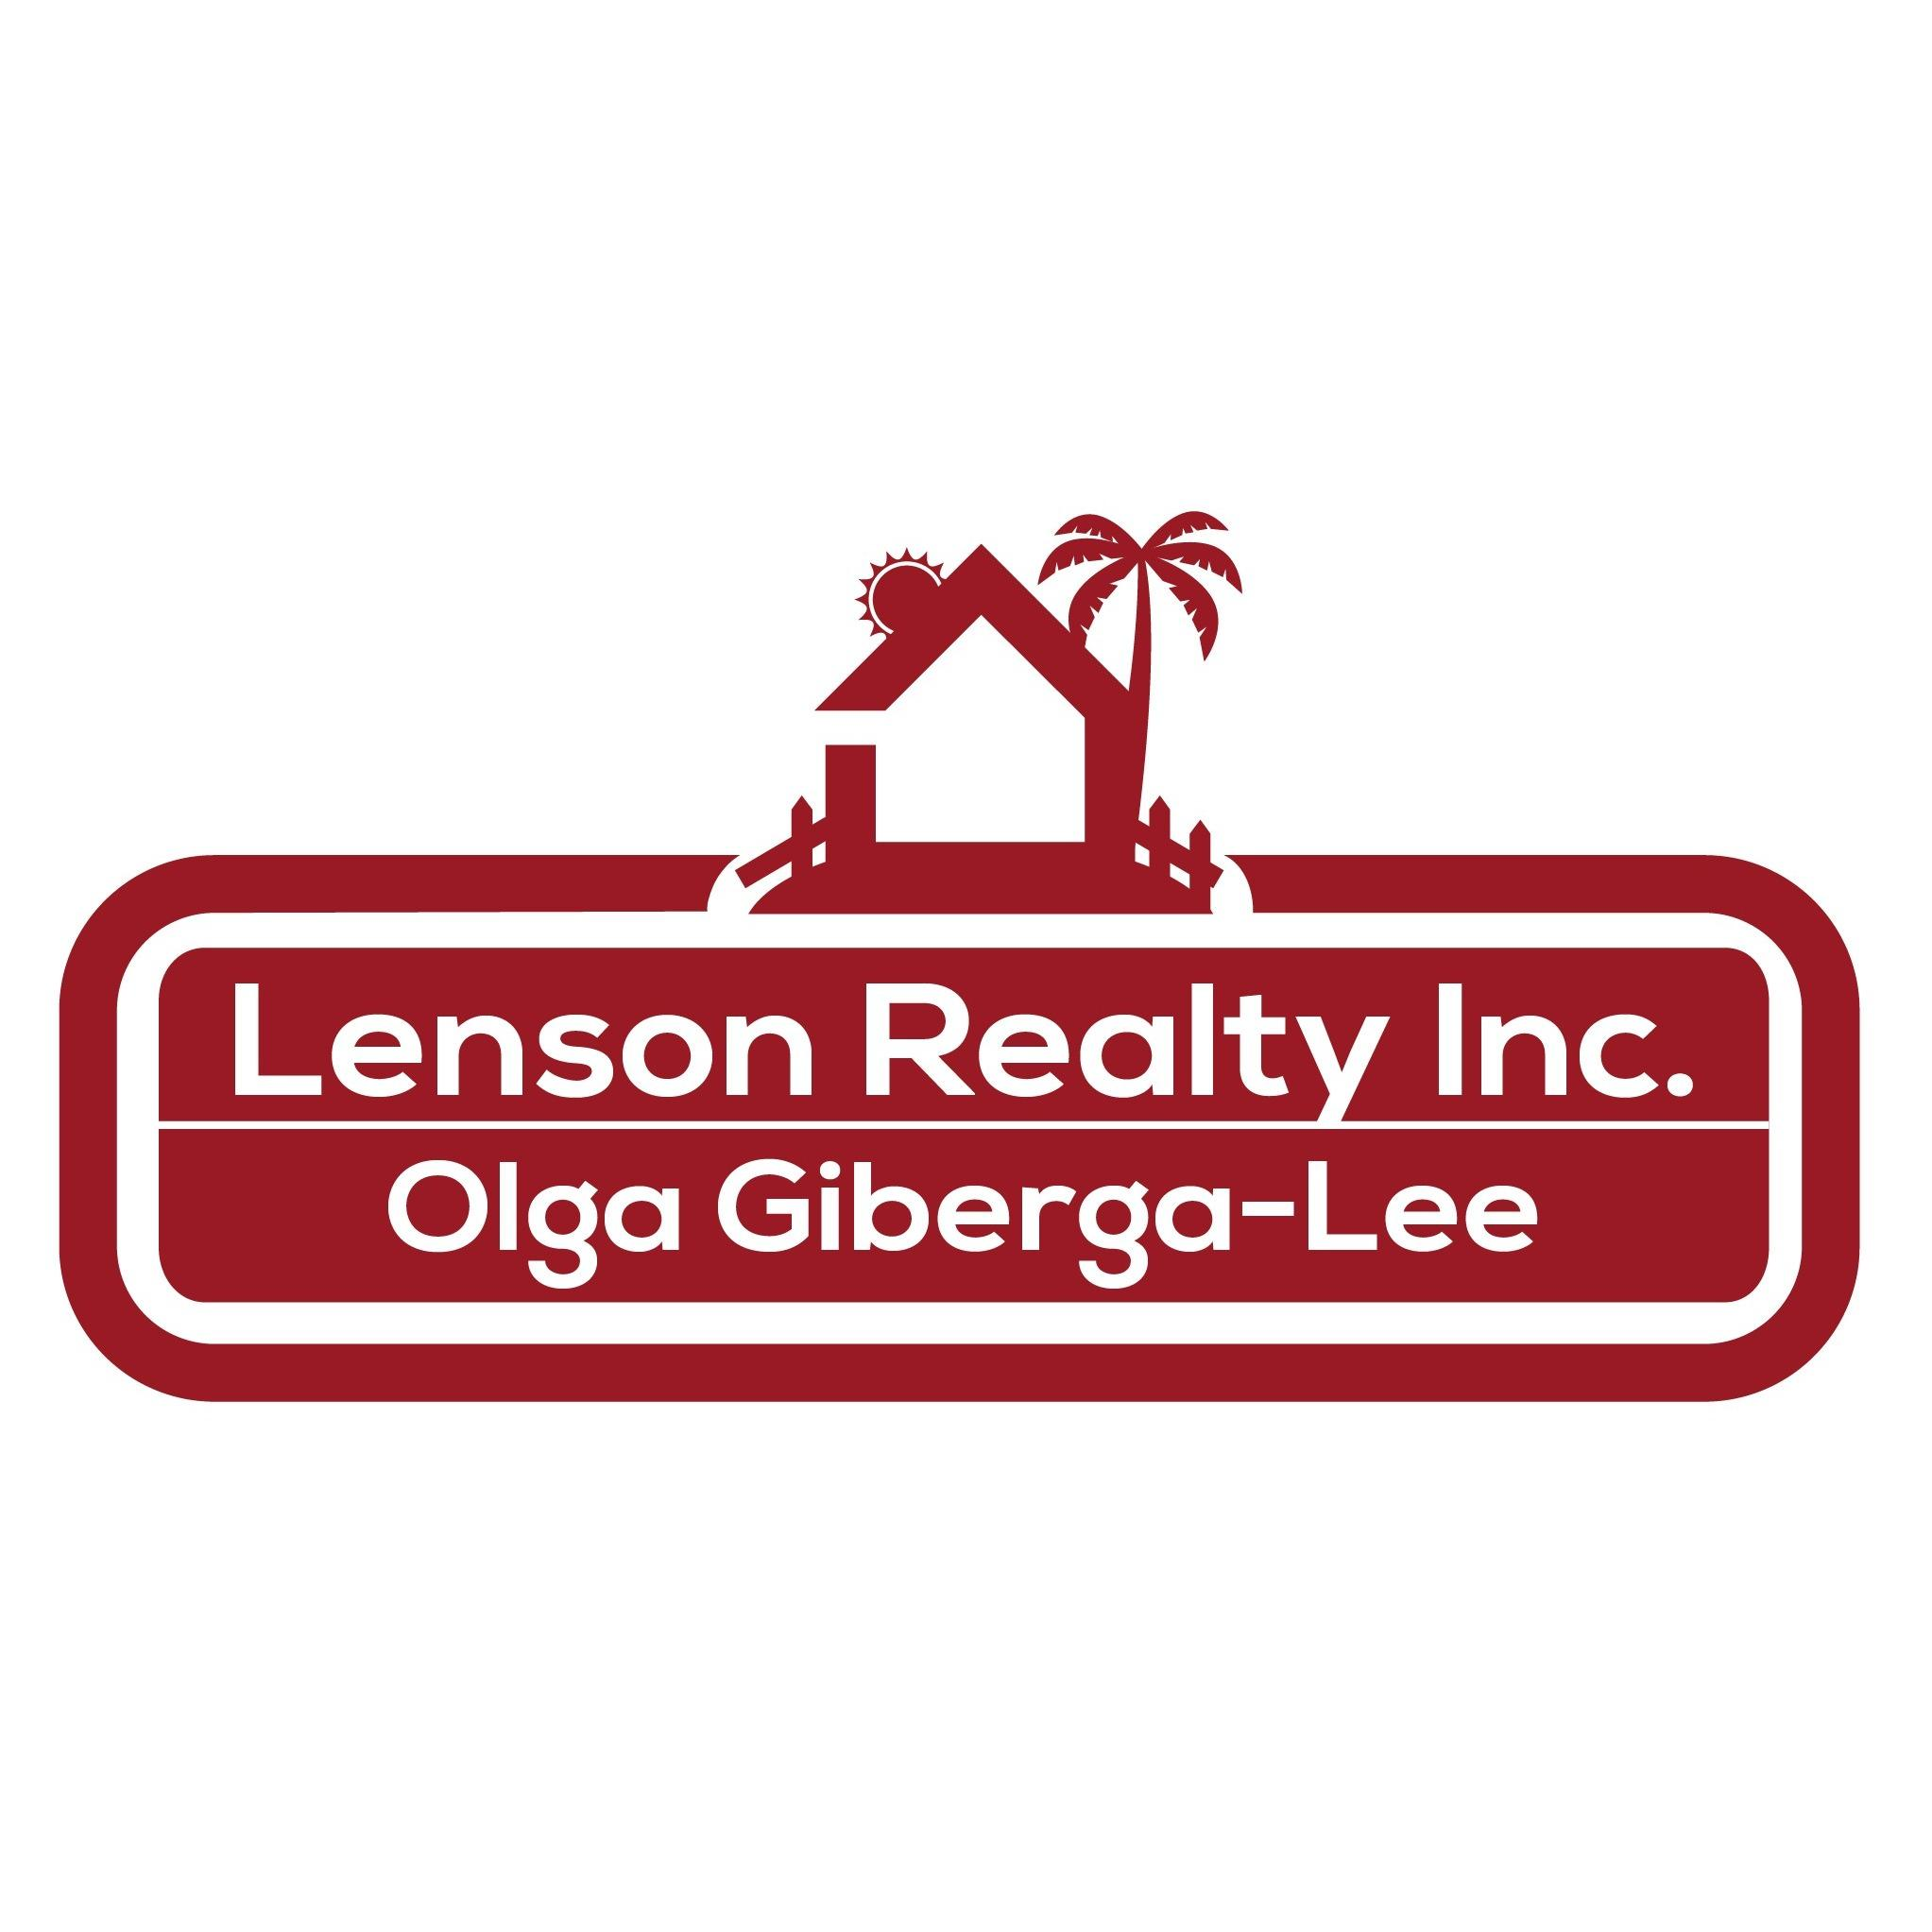 Lenson Realty Inc: Olga Giberga-Lee